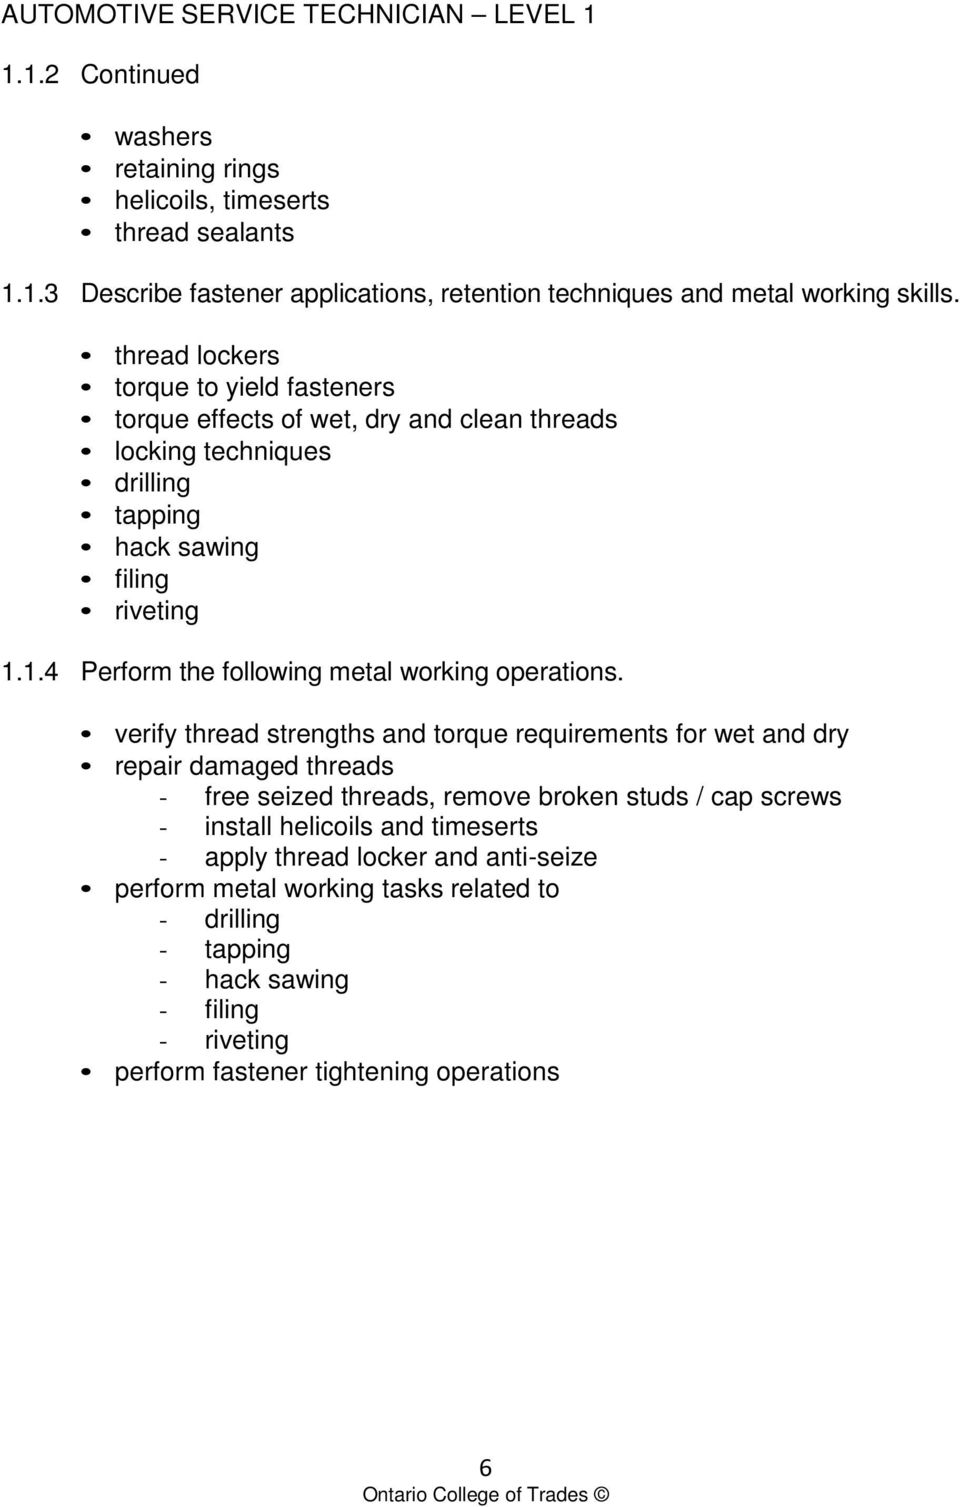 1.4 Perform the following metal working operations.